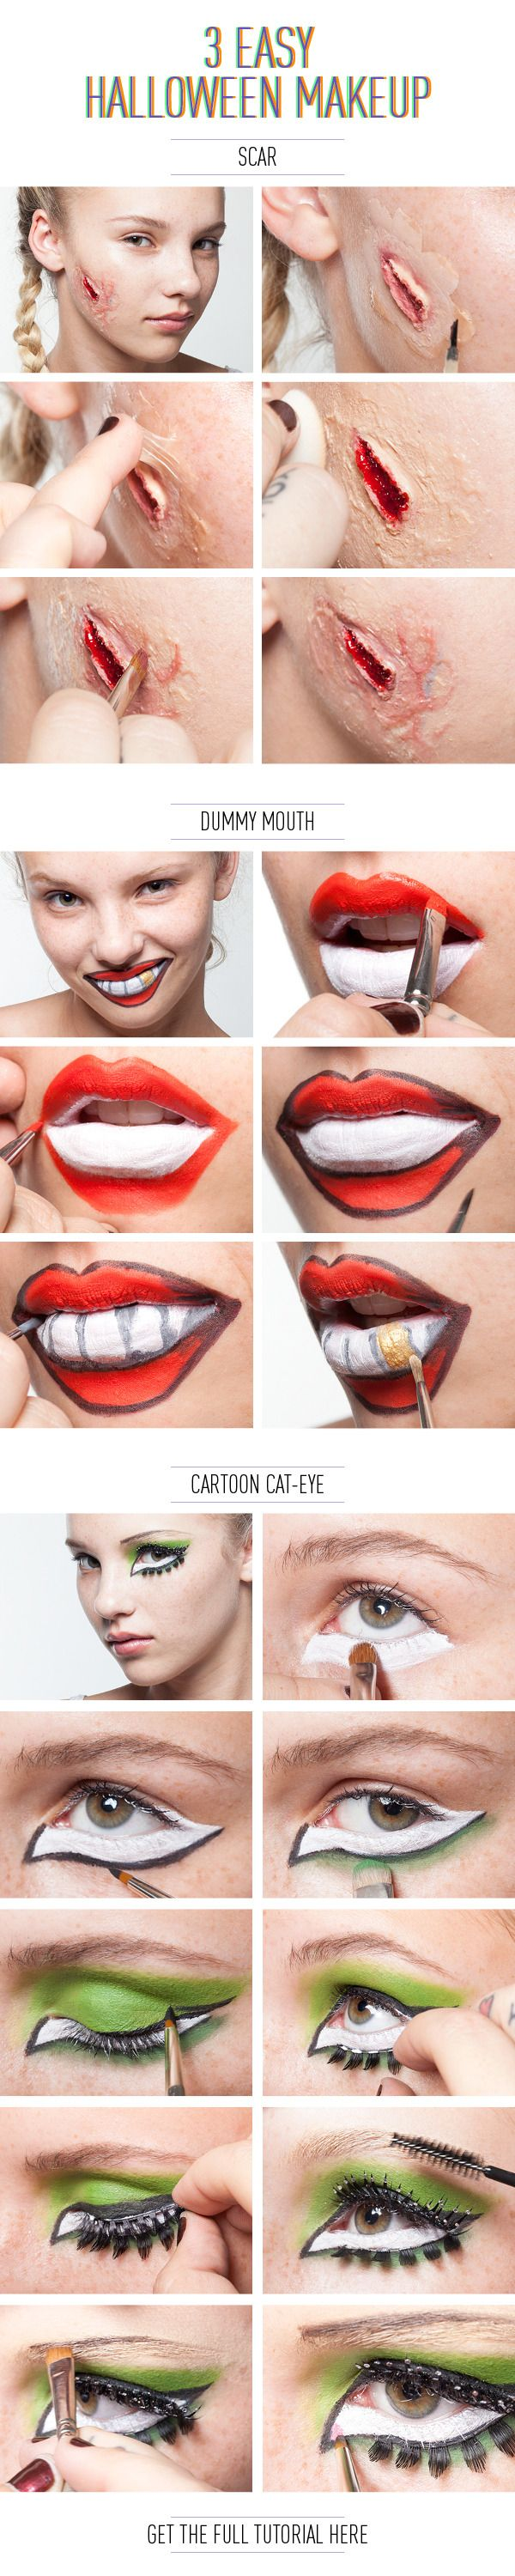 3 Easy Halloween Makeup Effects  Holiday  Event Ideas -1222